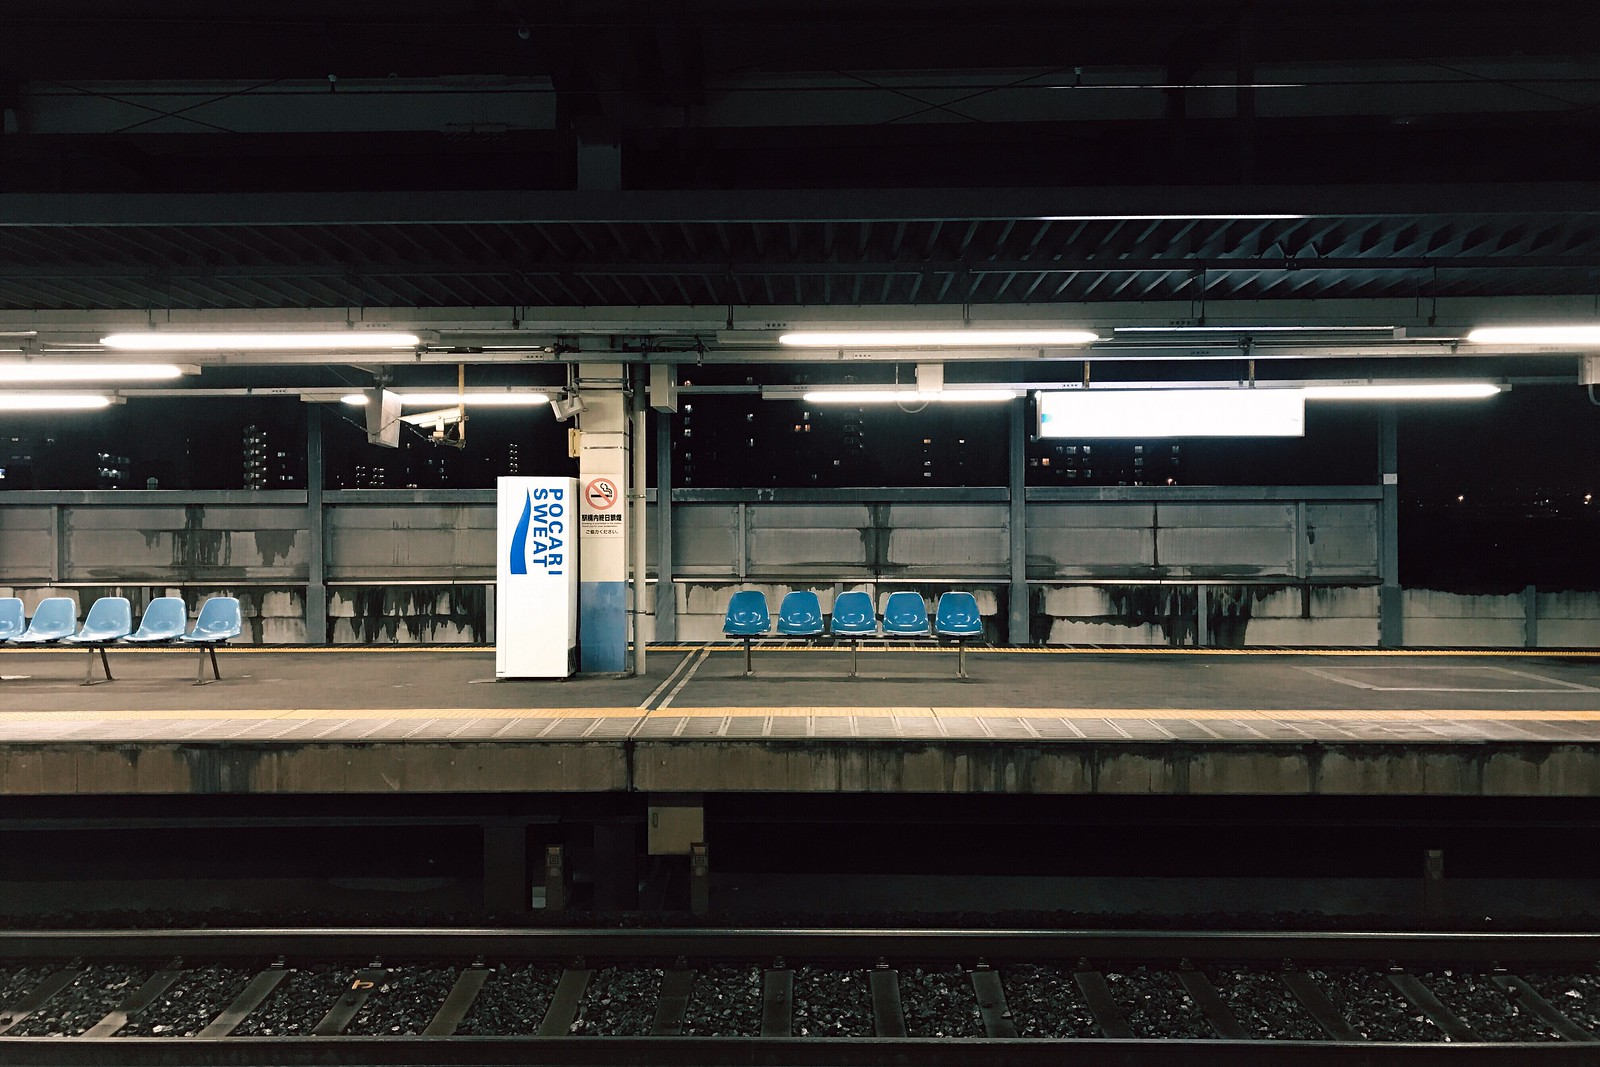 Yahiro station, taken by iPhone 7 with RNI Film.app